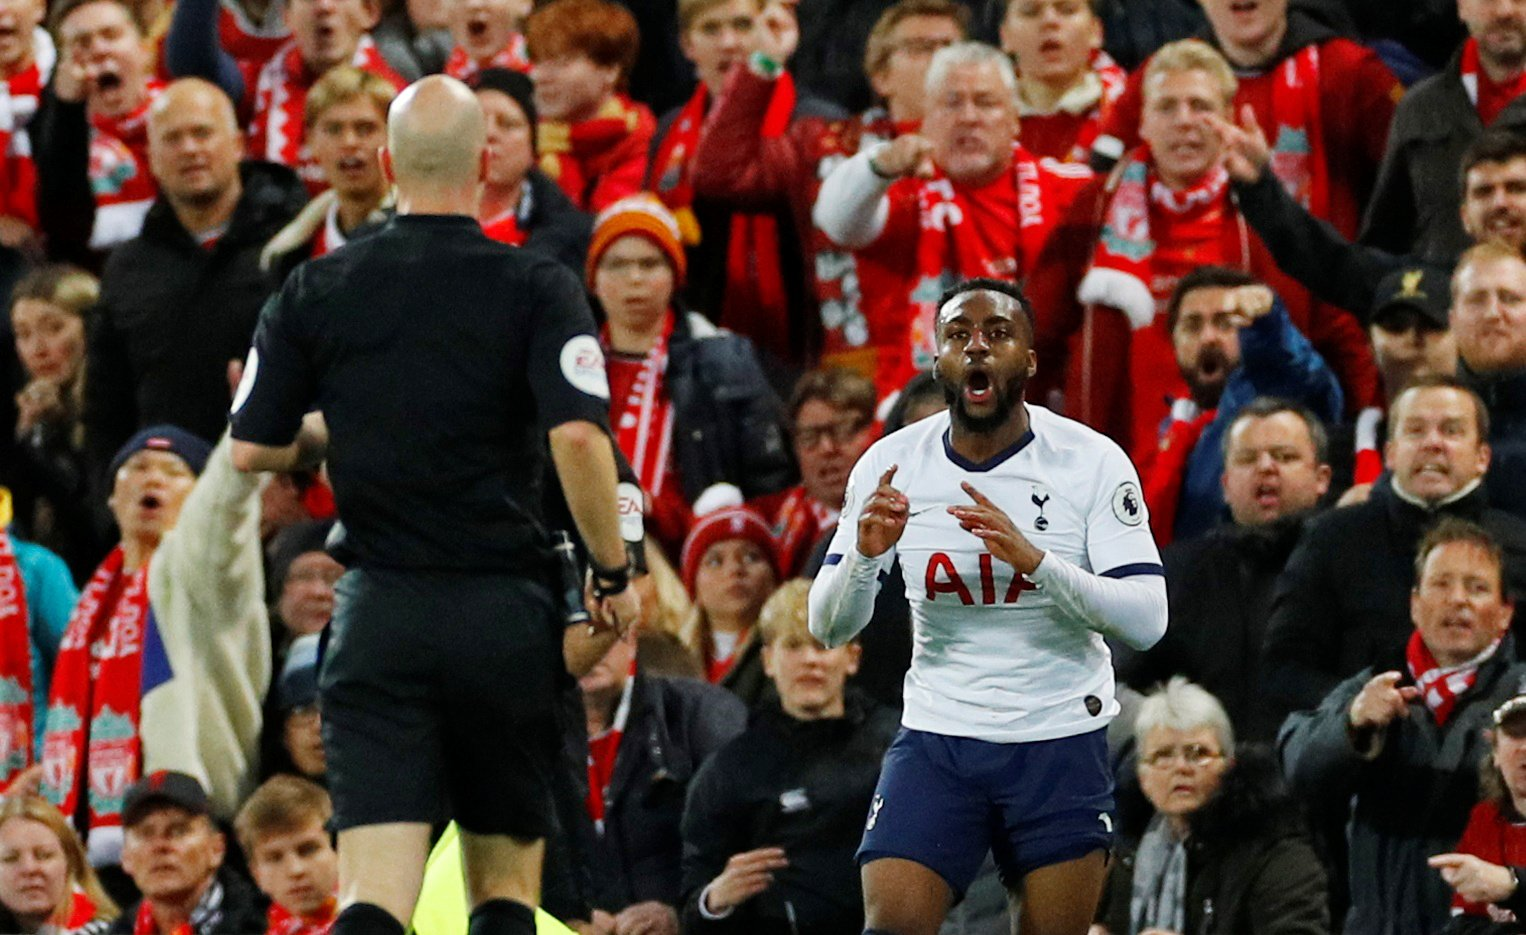 Tottenham Hotspur: Danny Rose's good gesture has not changed the mind of many fans